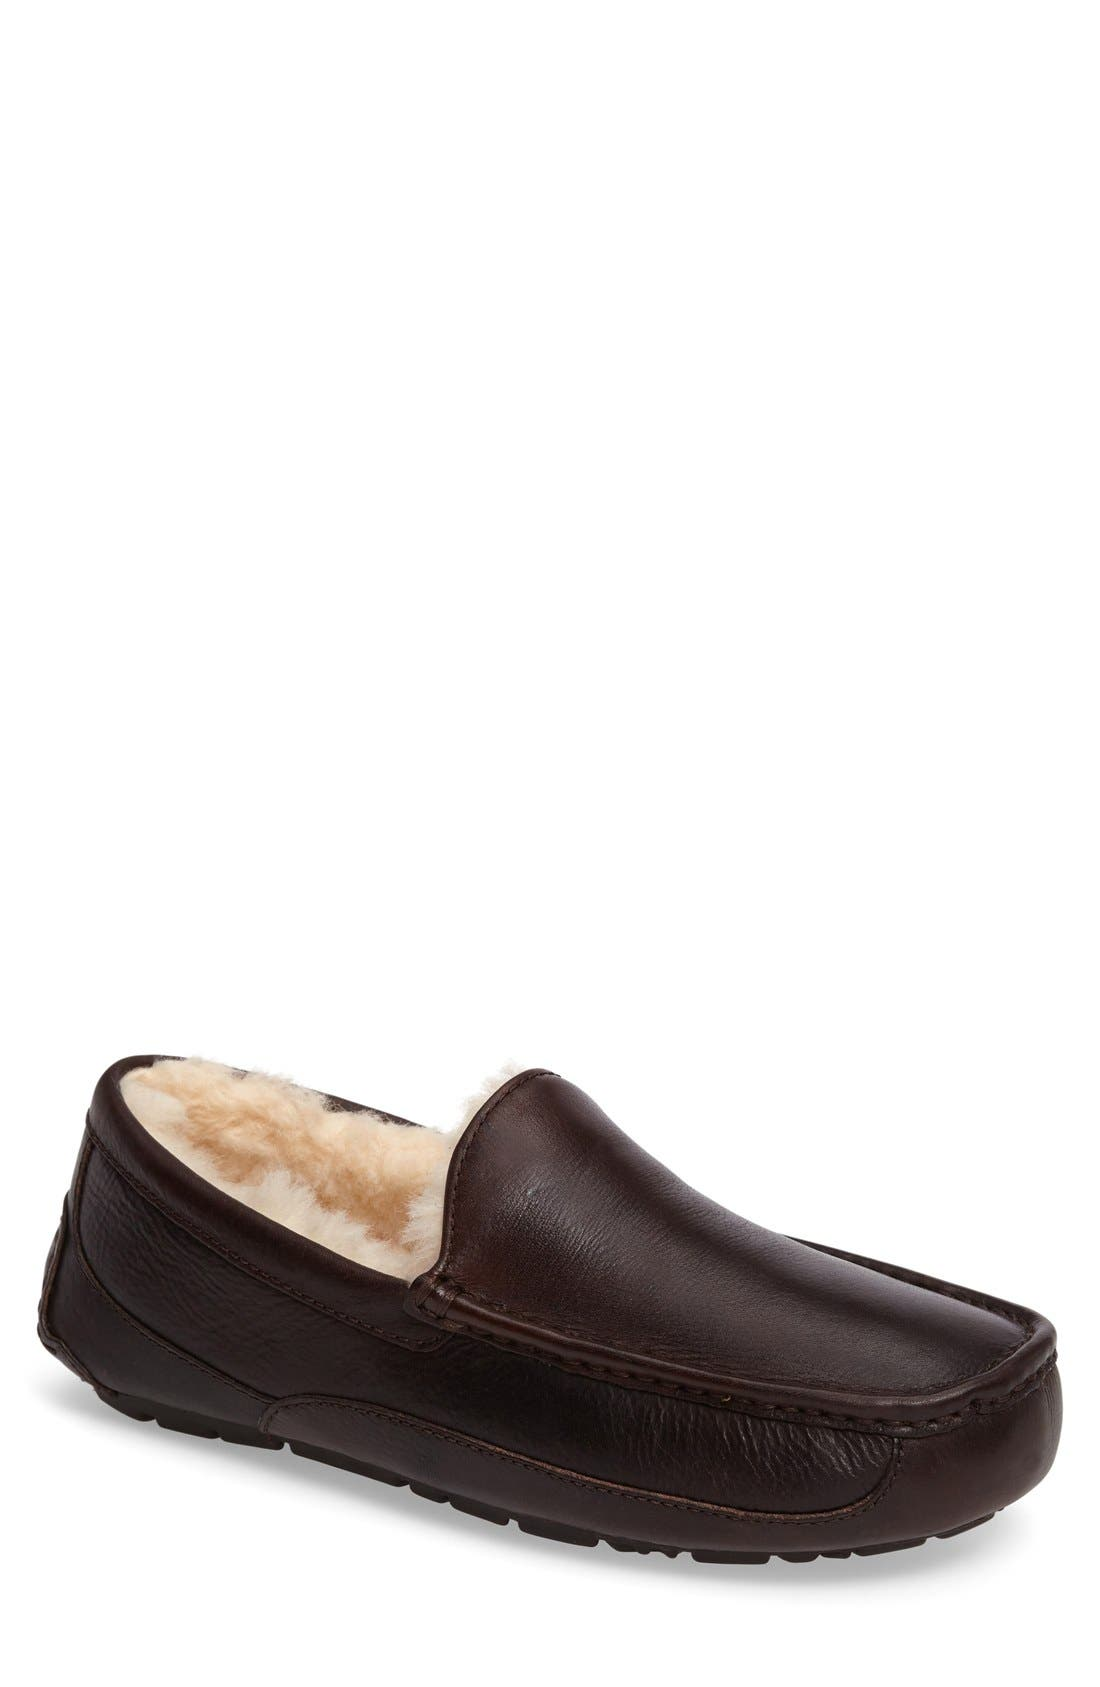 ugg ascot leather mens slippers